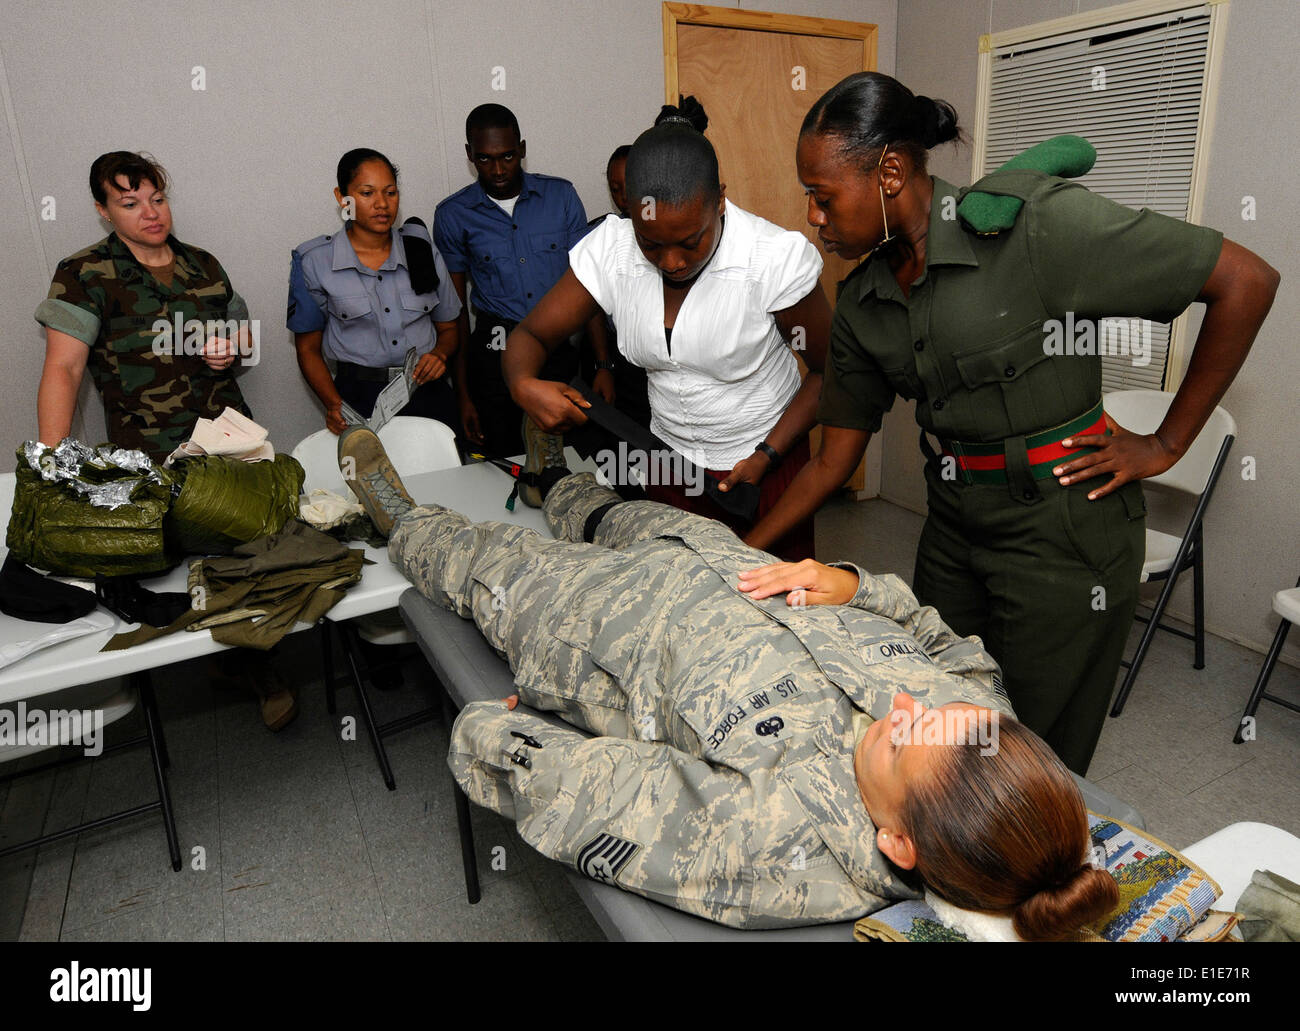 U.S. Navy Chief Hospital Corpsman Tracie Ham, with Maritime Civil Affairs and Security Training, observes as members Stock Photo